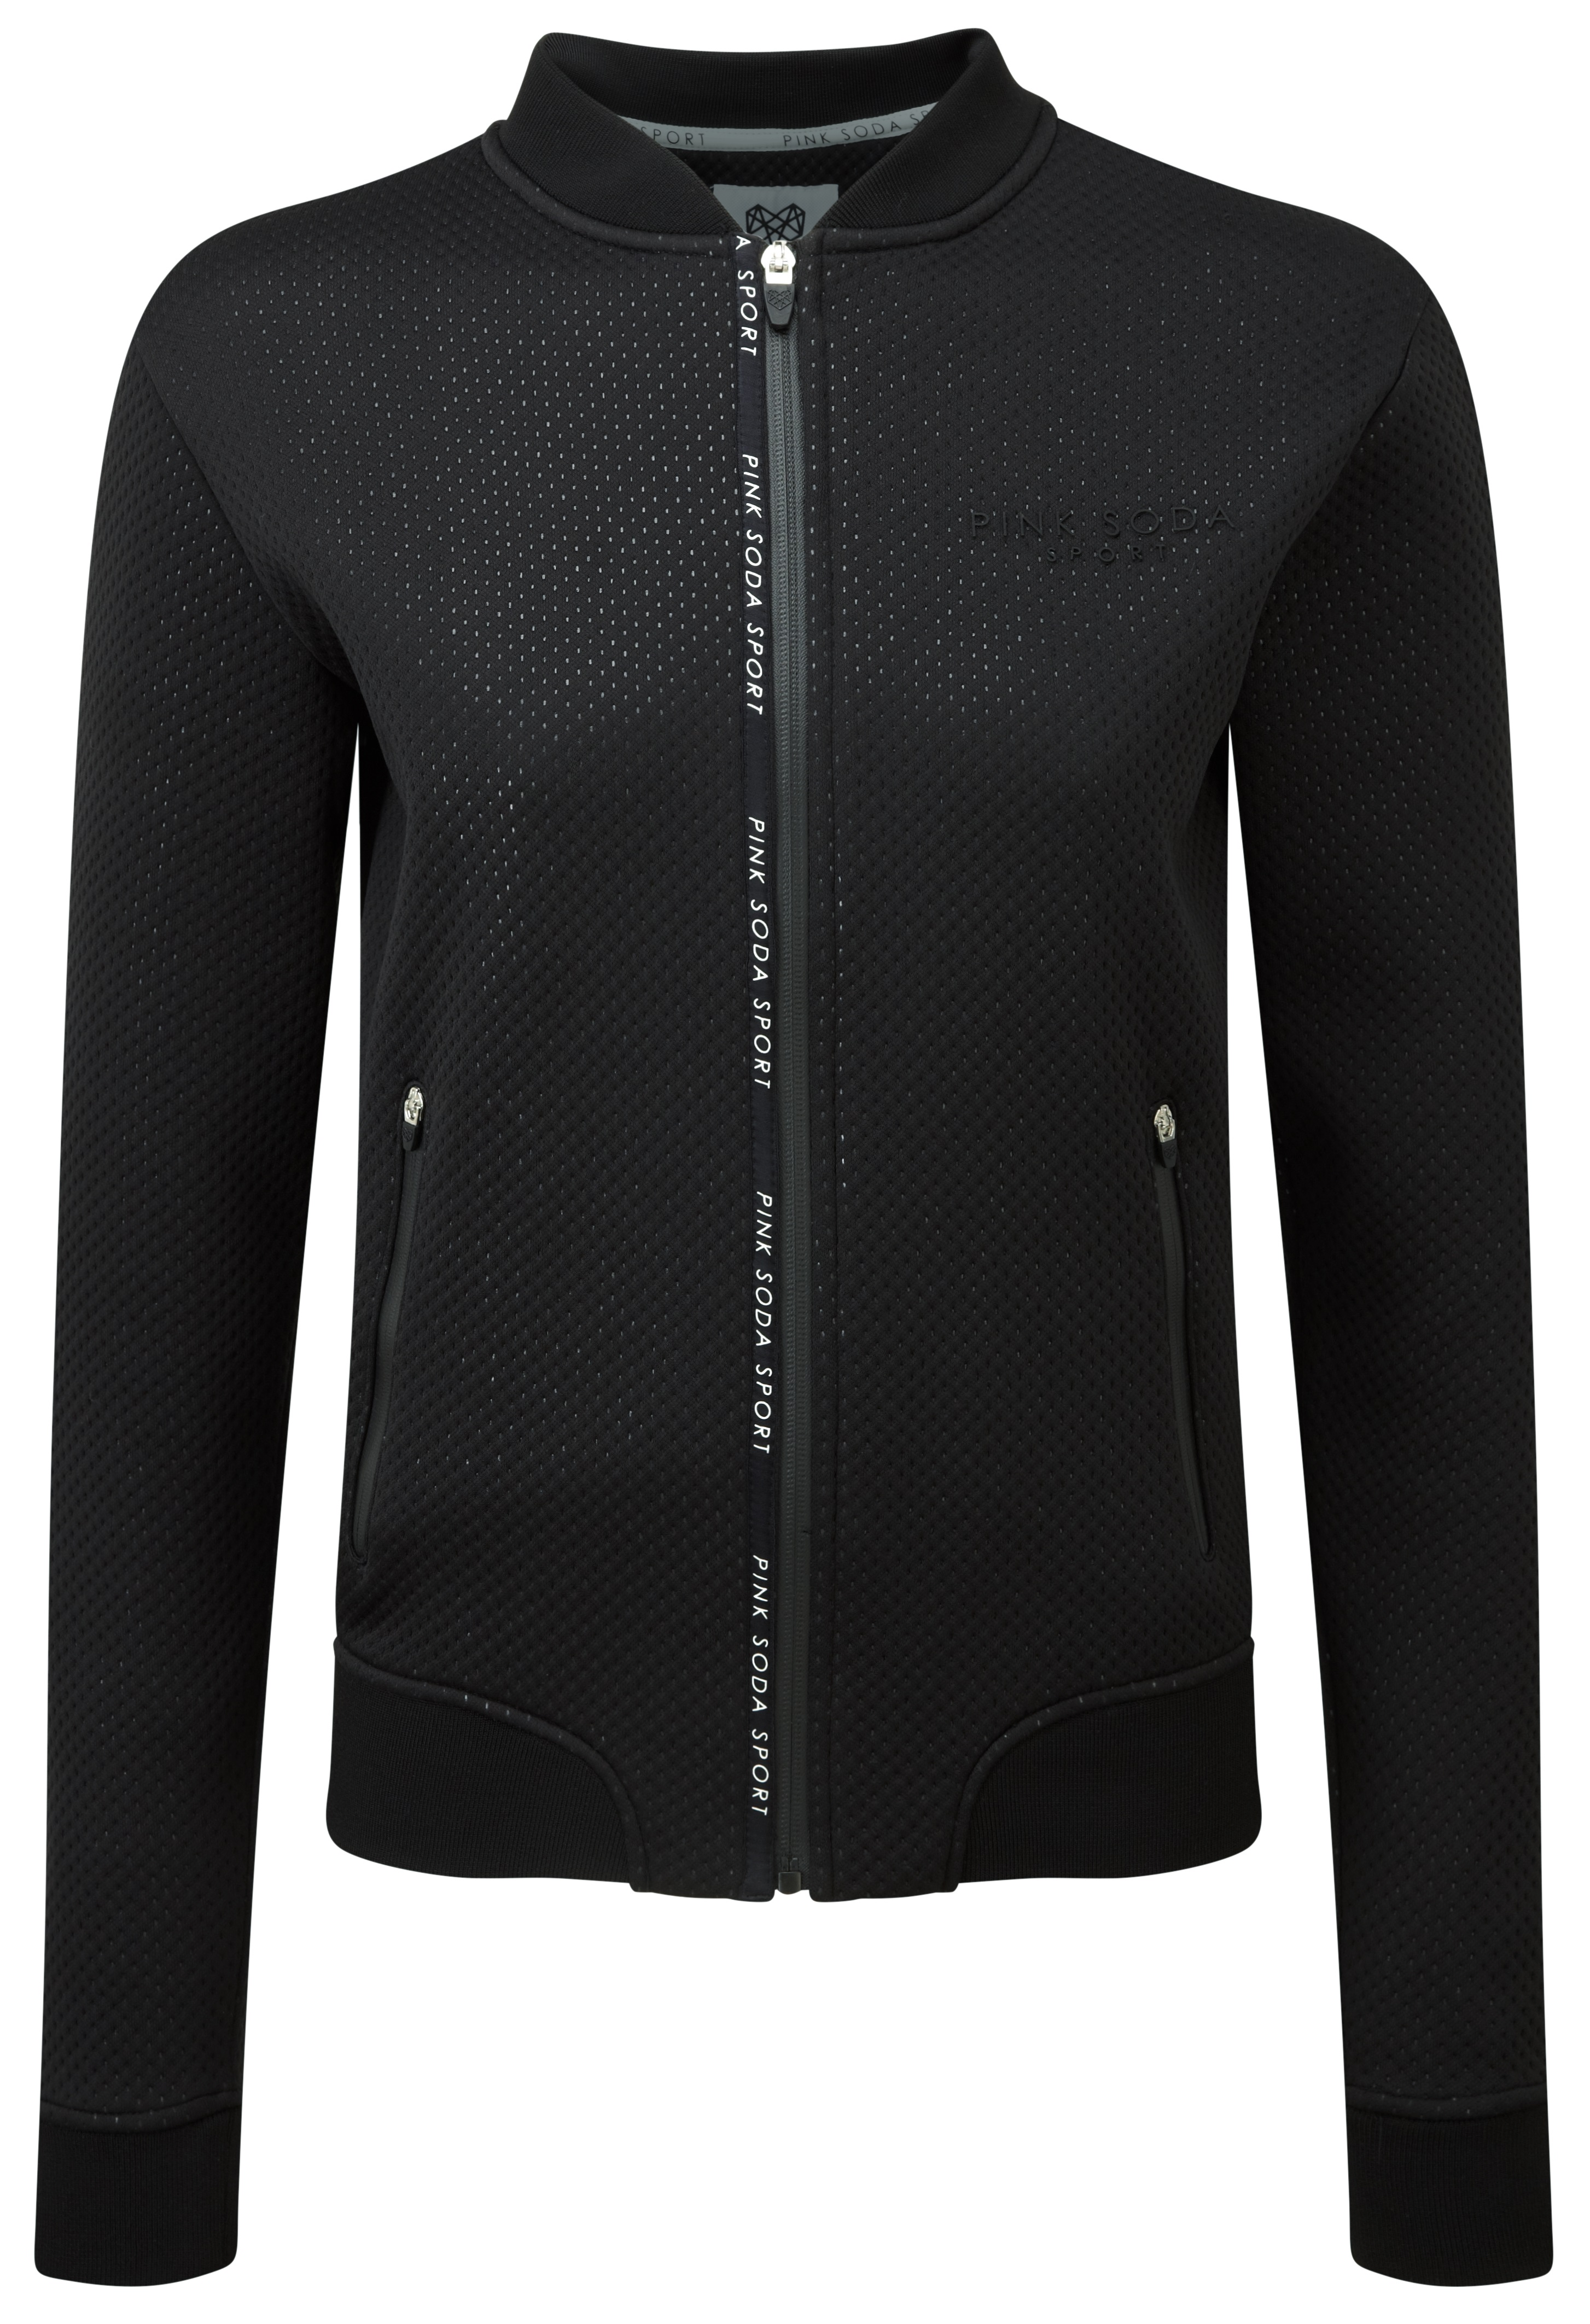 e1524eb080924 Here s Pink Soda Sport s take on a bomber jacket we can be active in. It s  made from a bonded polyester fabric with an all-over dot pattern.